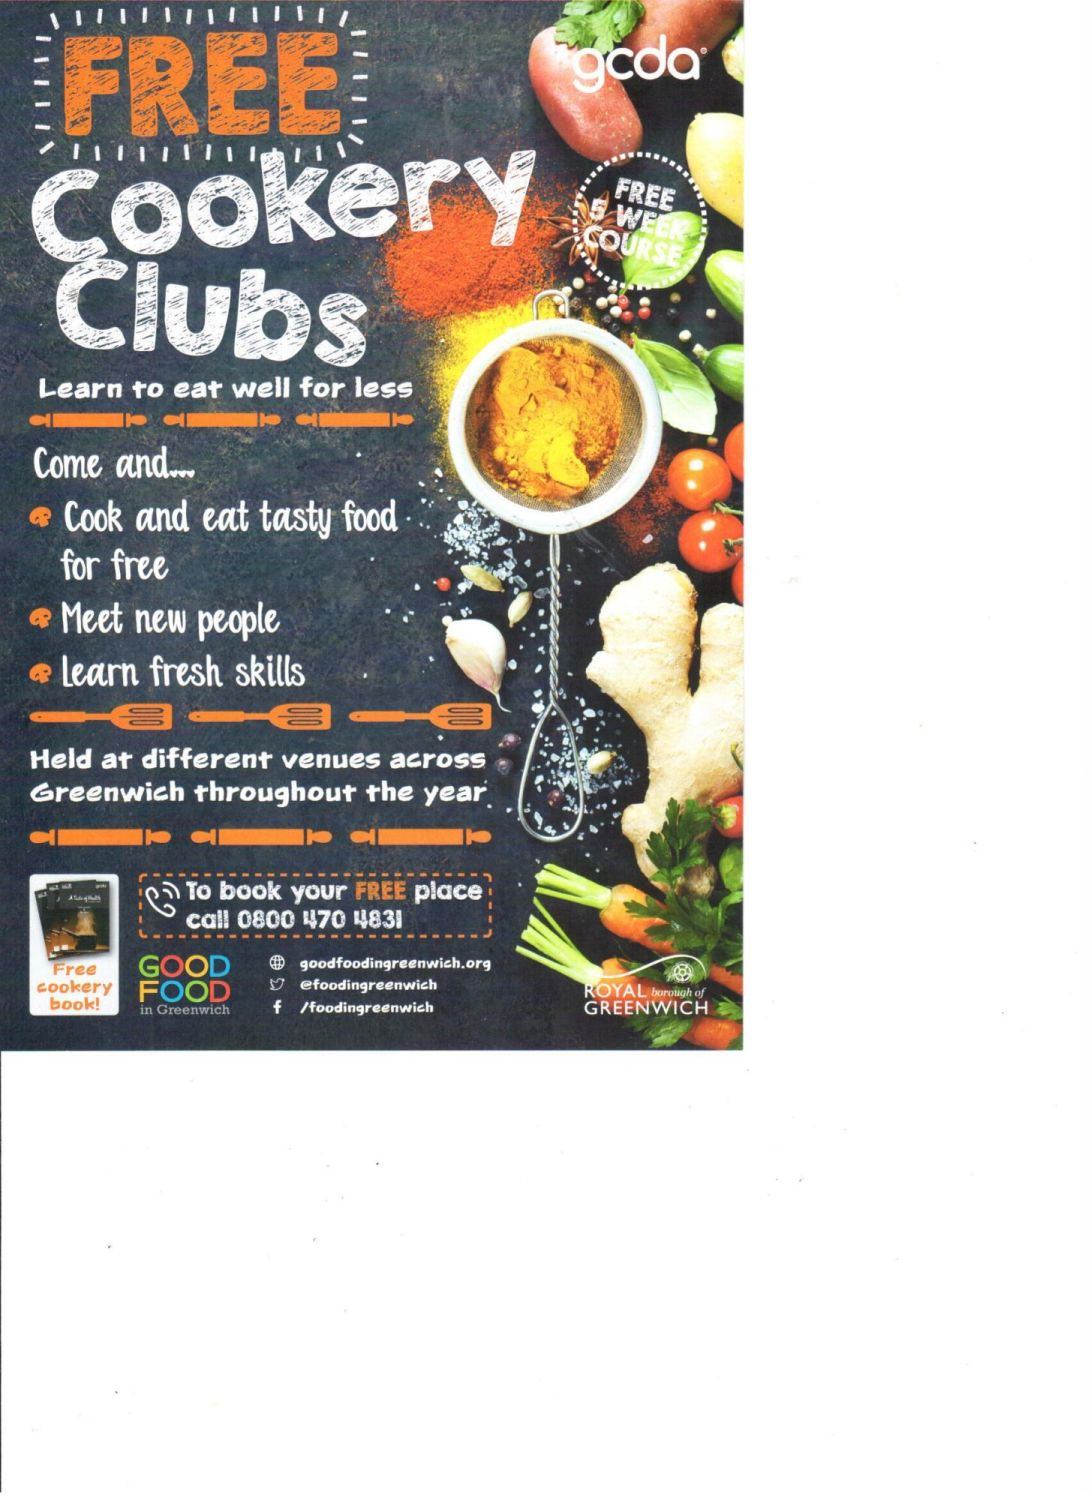 free cookery clubs 2018 new